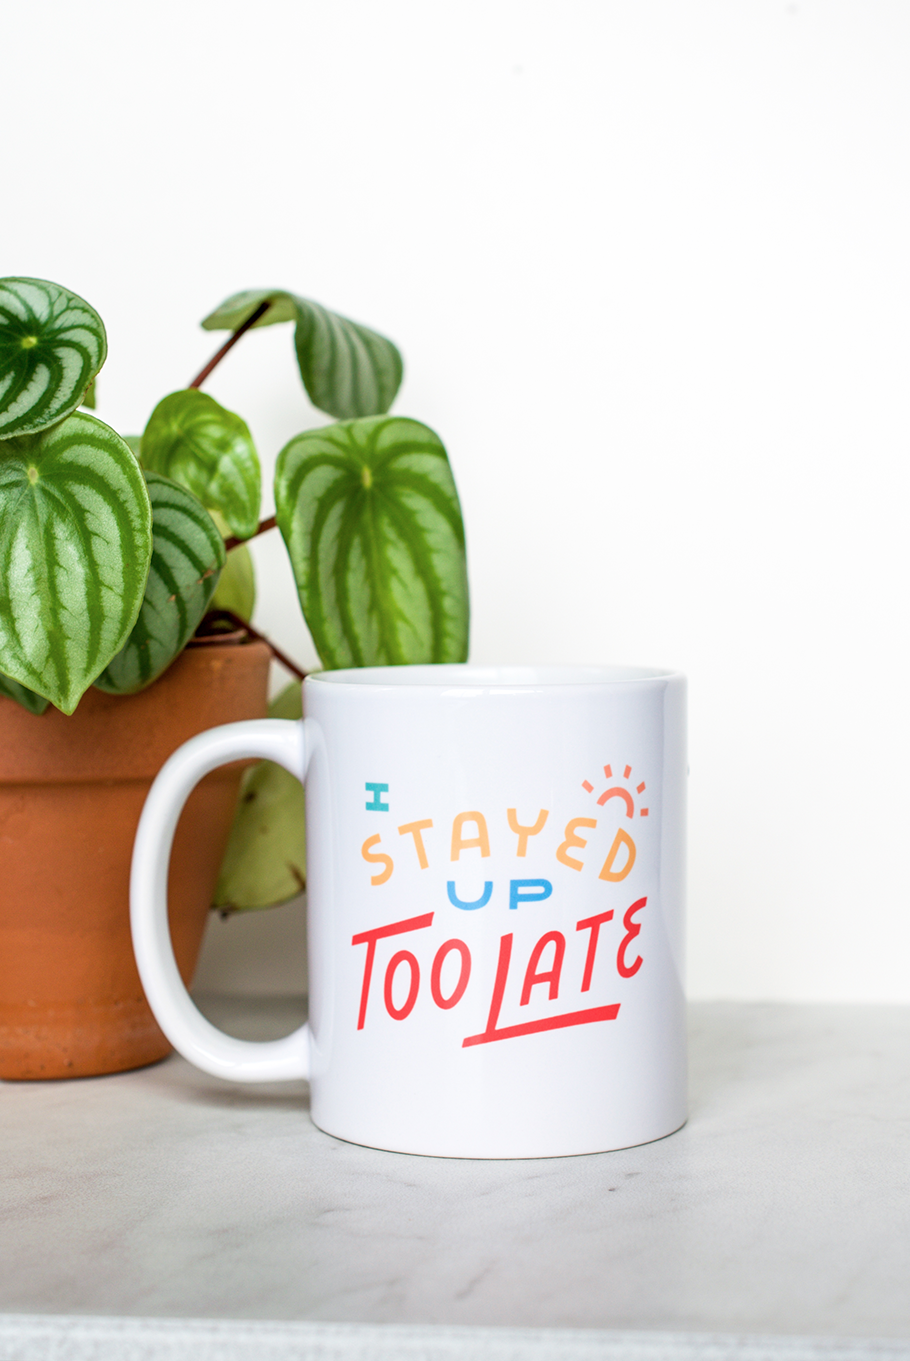 """I Stayed Up Too Late"" mug by Valley Cruise Press"